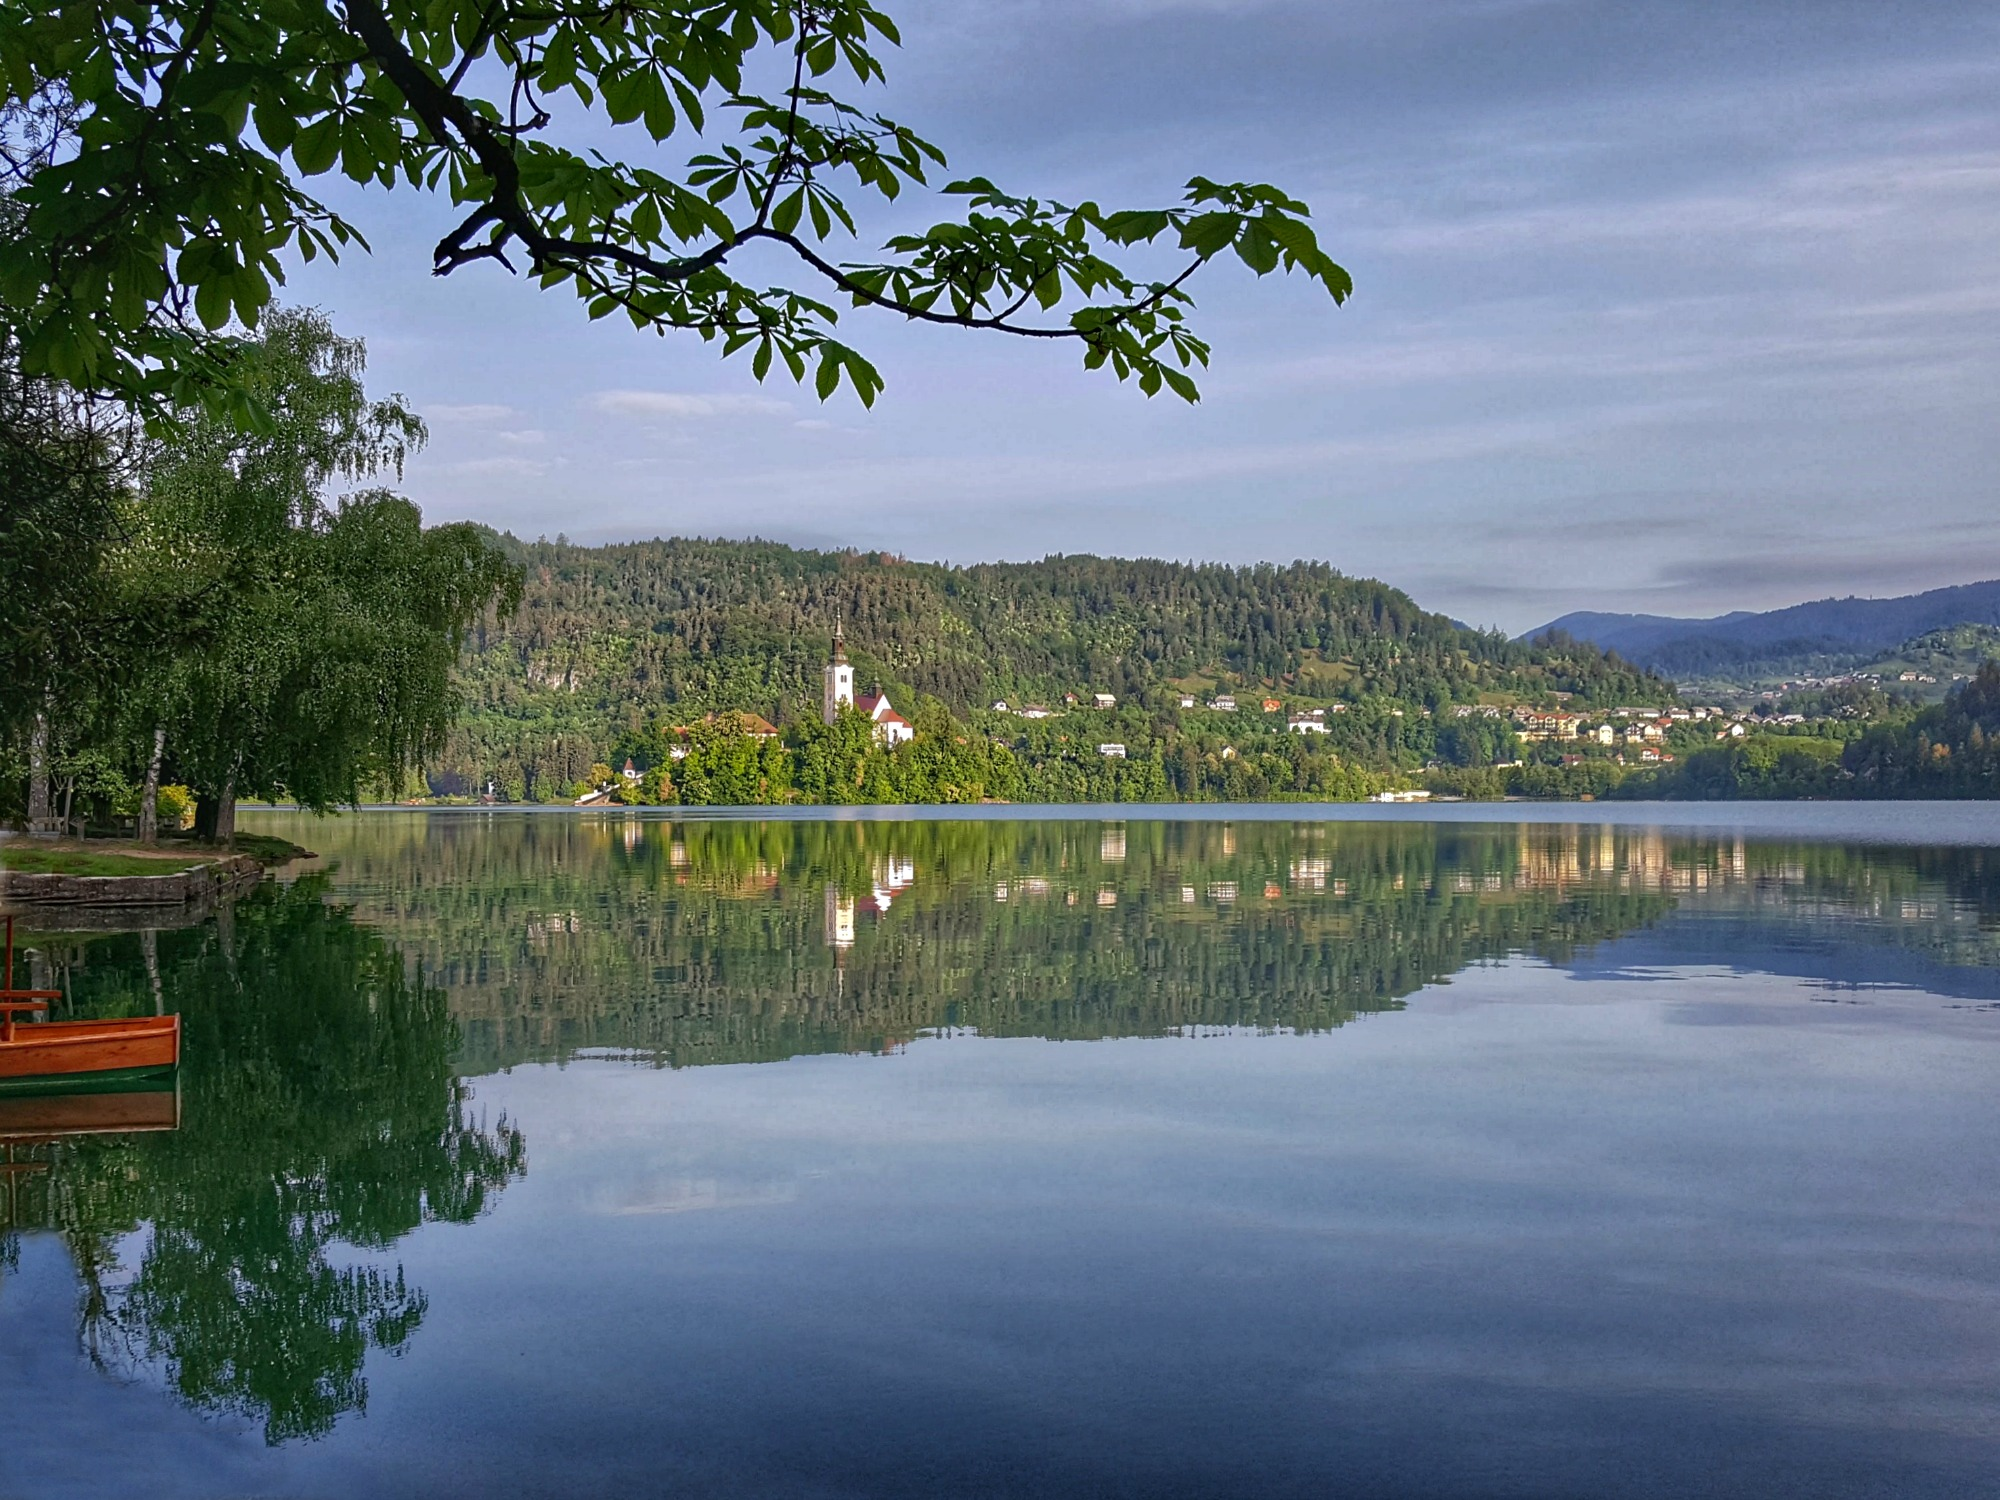 Lake Bleke Slovenia, reflection of the island.